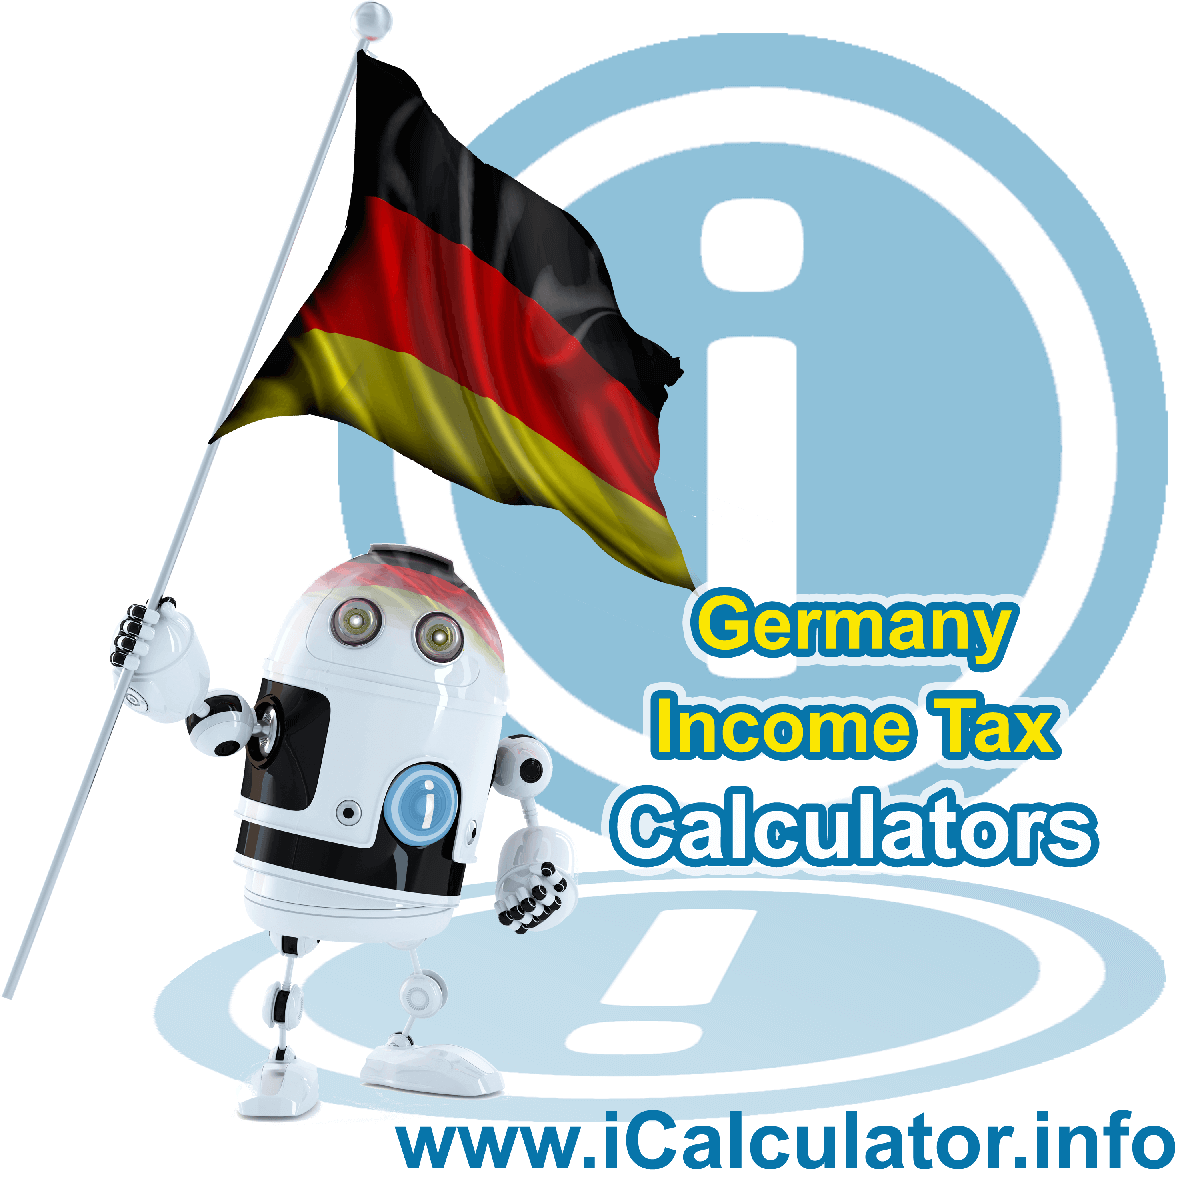 German IncomeTax Calculator. This image provides details of how to calculate income tax in Germany using a calculator and notepad. By using the tax rates and personal income tax formula, the German Tax Calculator provides a true calculation of the amount of taxes and other deductins including church tax, medical insurance, social security and other payroll related deductions in Germany